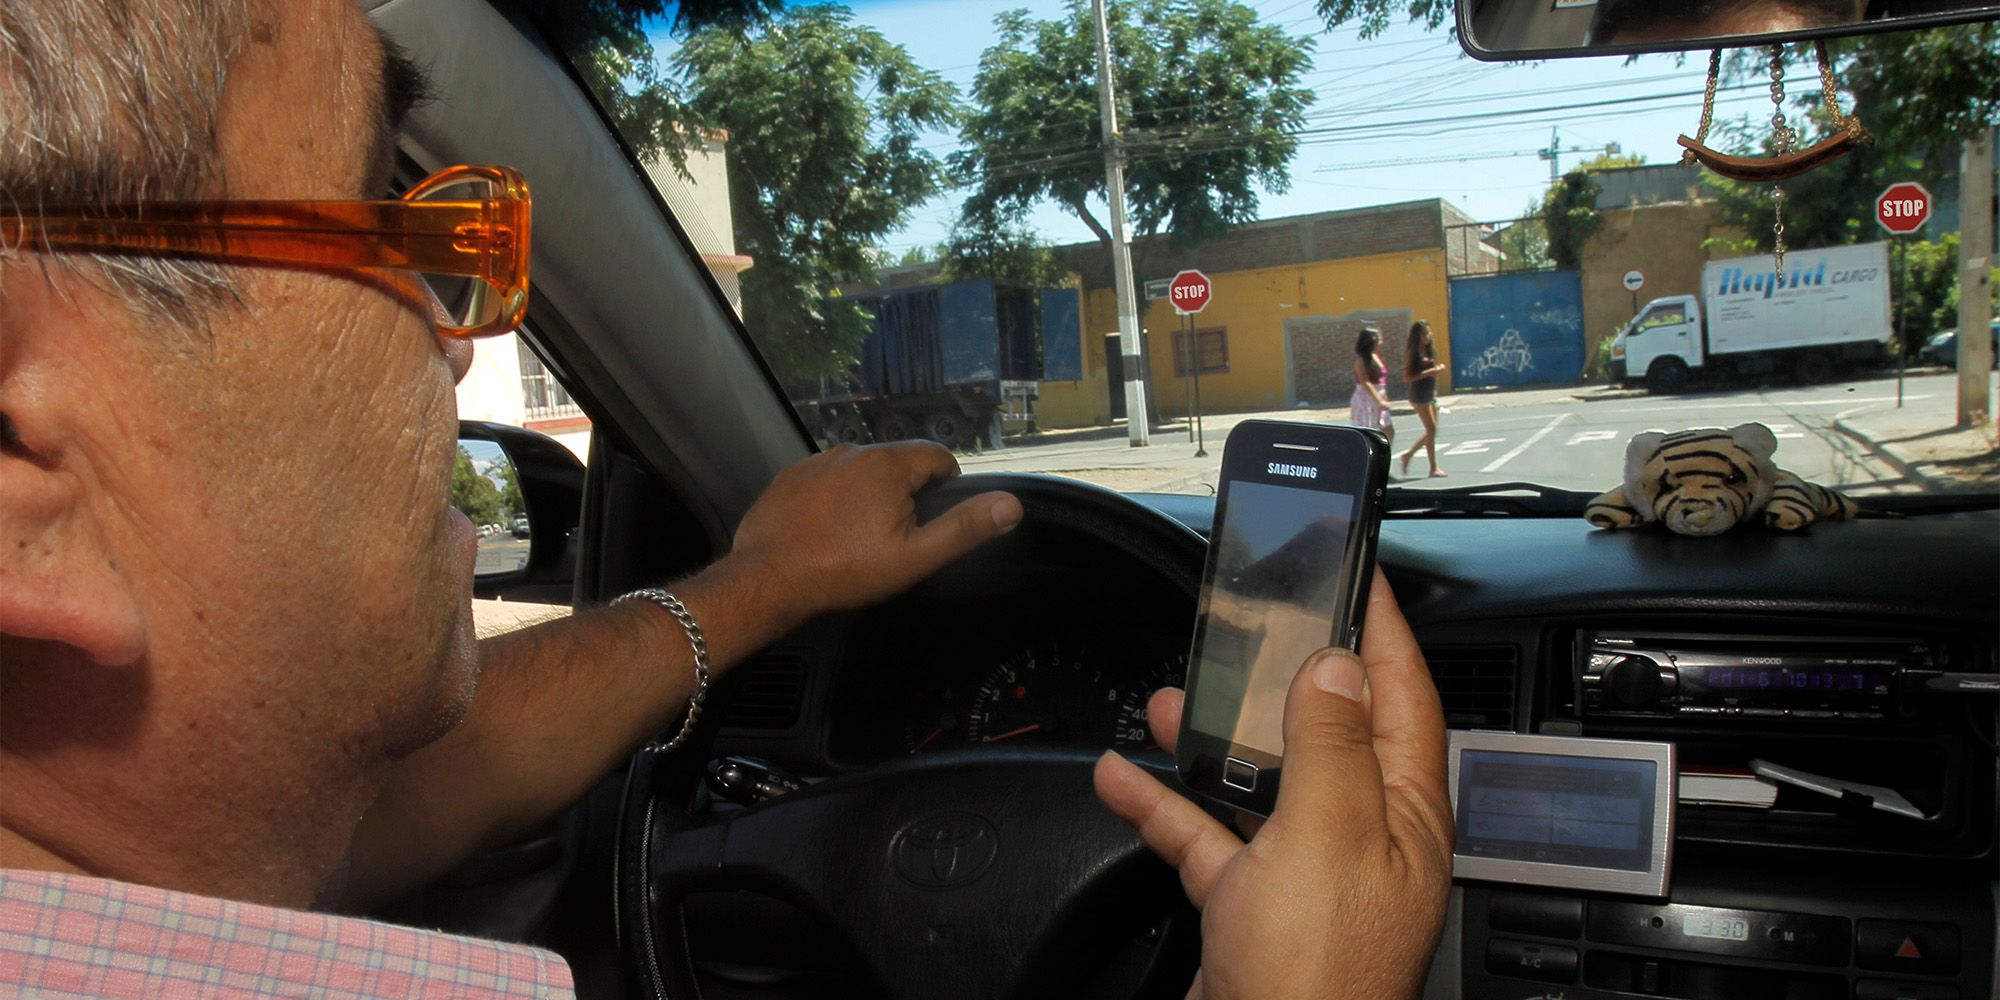 Conduciendo con movil en la mano